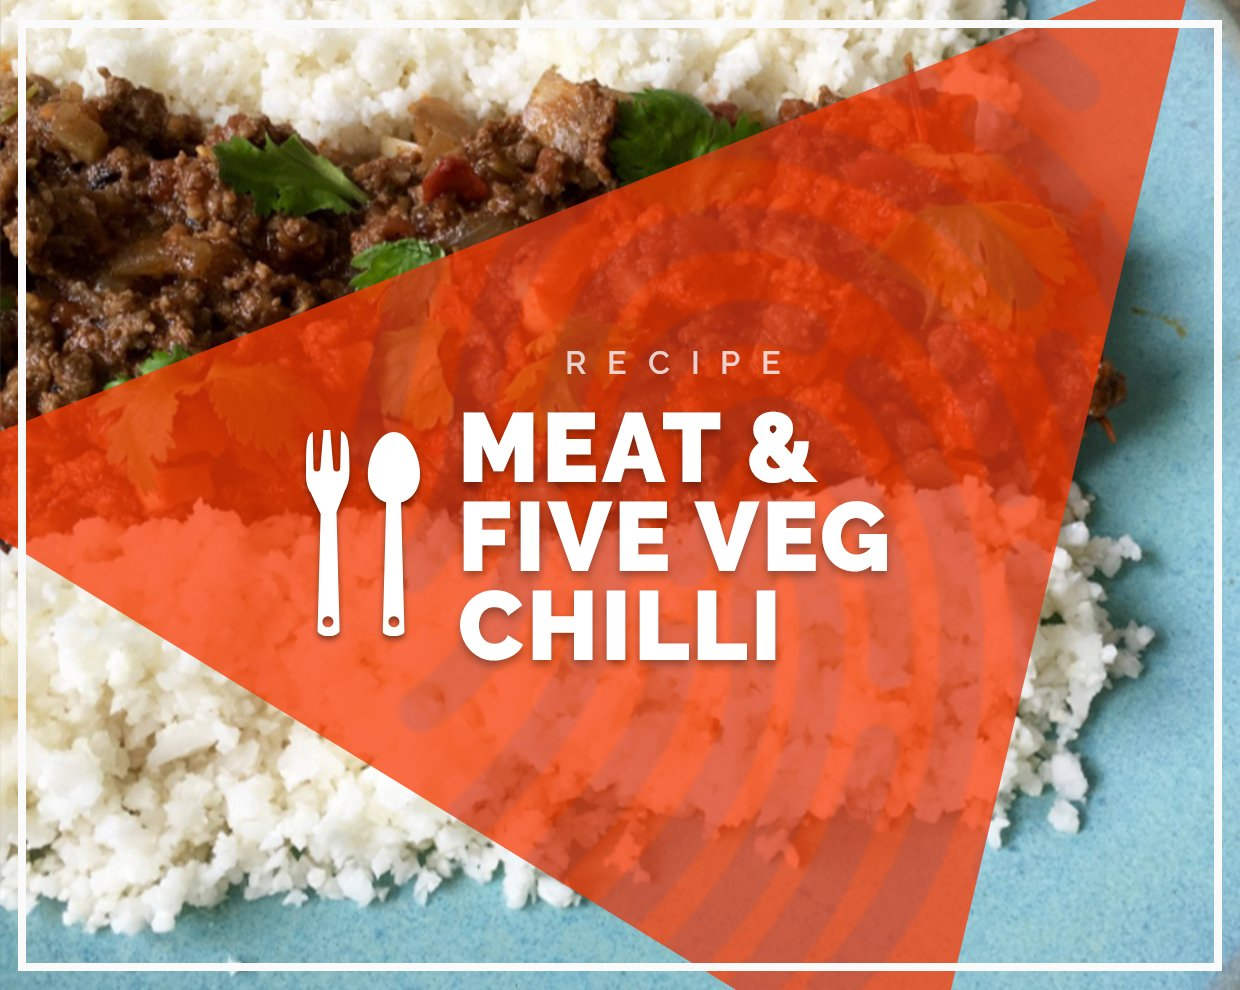 Beef and five veg chilli